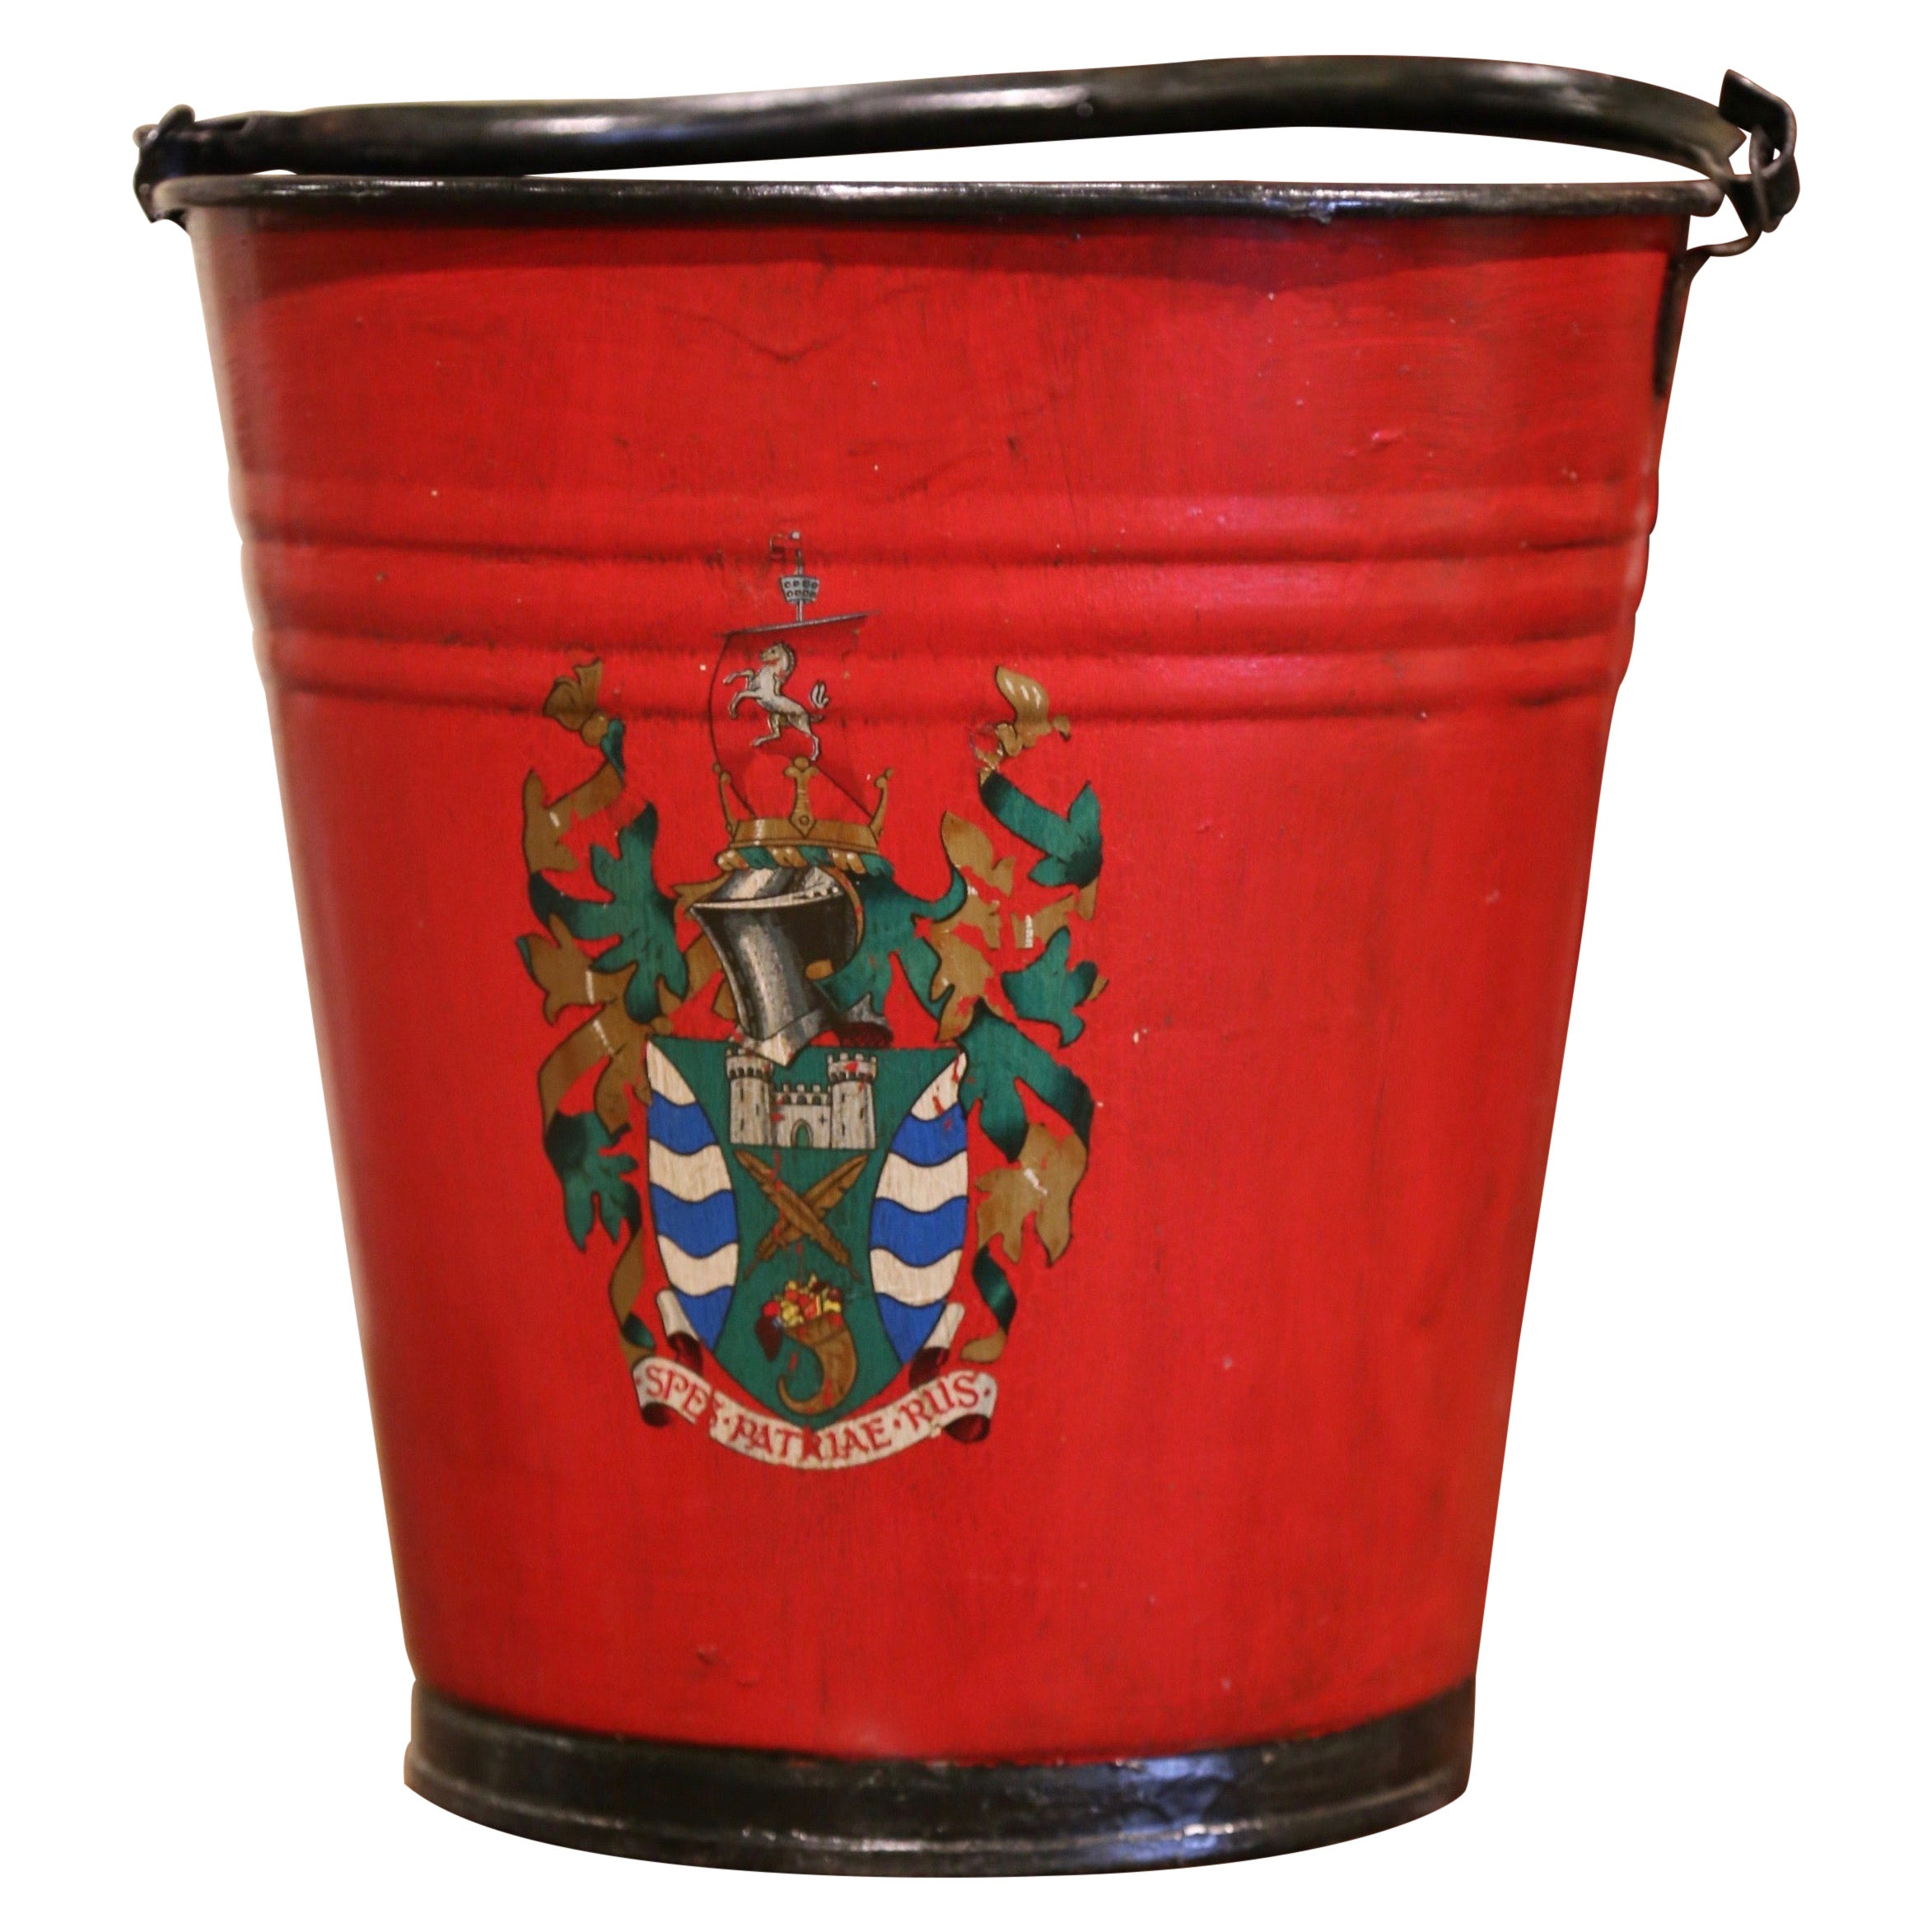 19th Century French Hand Painted Iron Bucket with Decorative Crest Decor